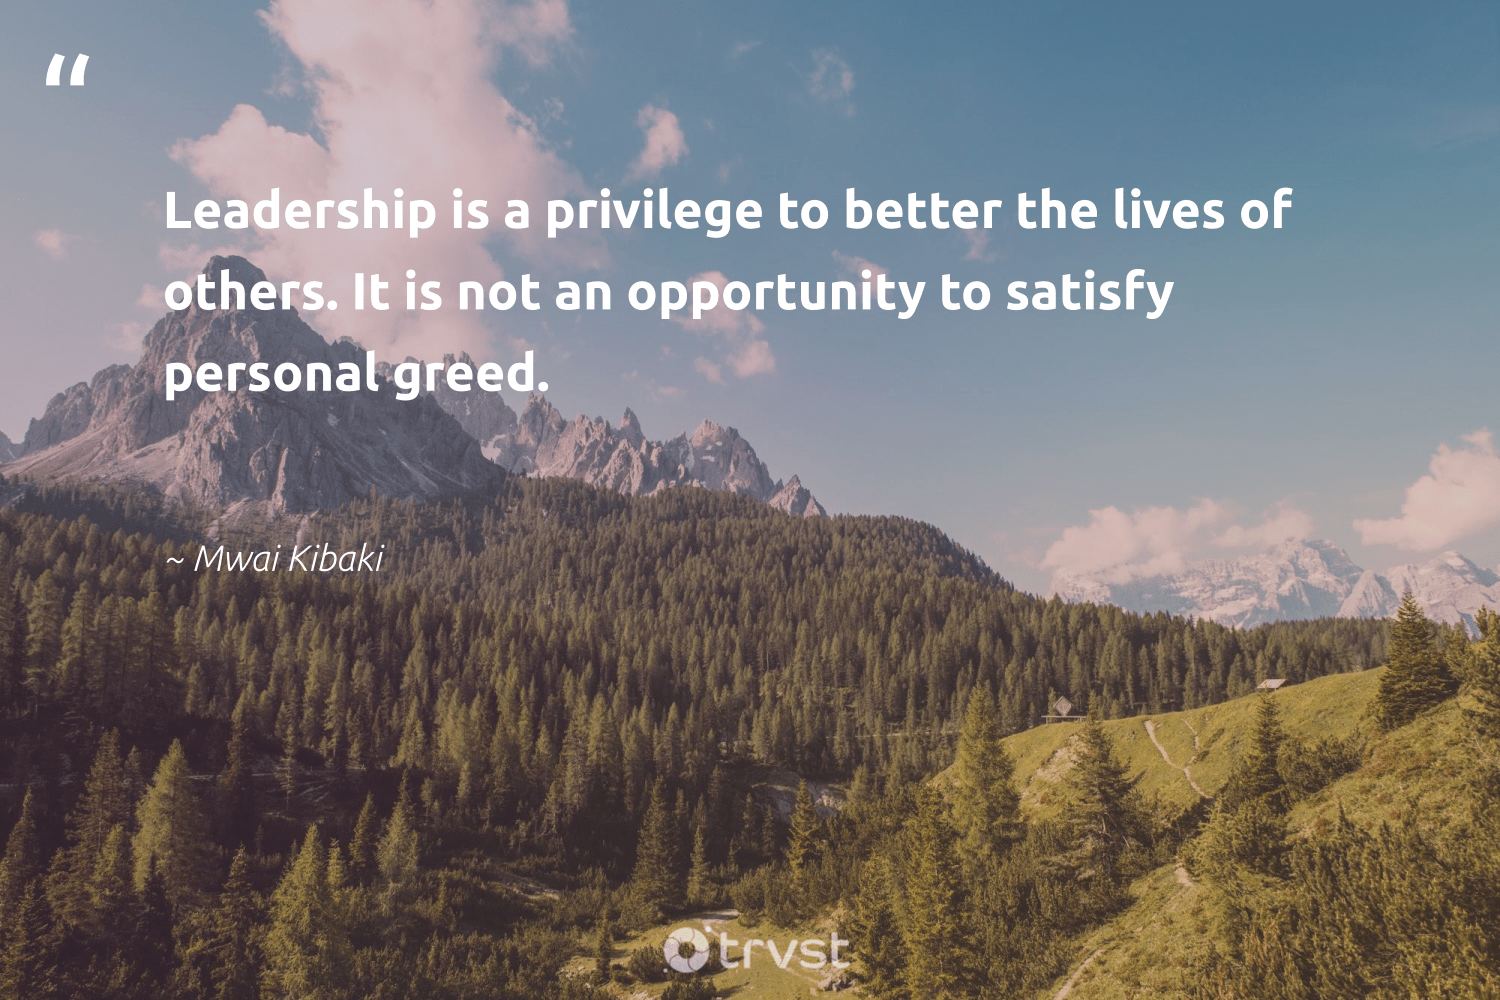 """Leadership is a privilege to better the lives of others. It is not an opportunity to satisfy personal greed.""  - Mwai Kibaki #trvst #quotes #leadership #leadershipskills #begreat #softskills #collectiveaction #leadershipdevelopment #nevergiveup #futureofwork #socialimpact #leadershipqualities"